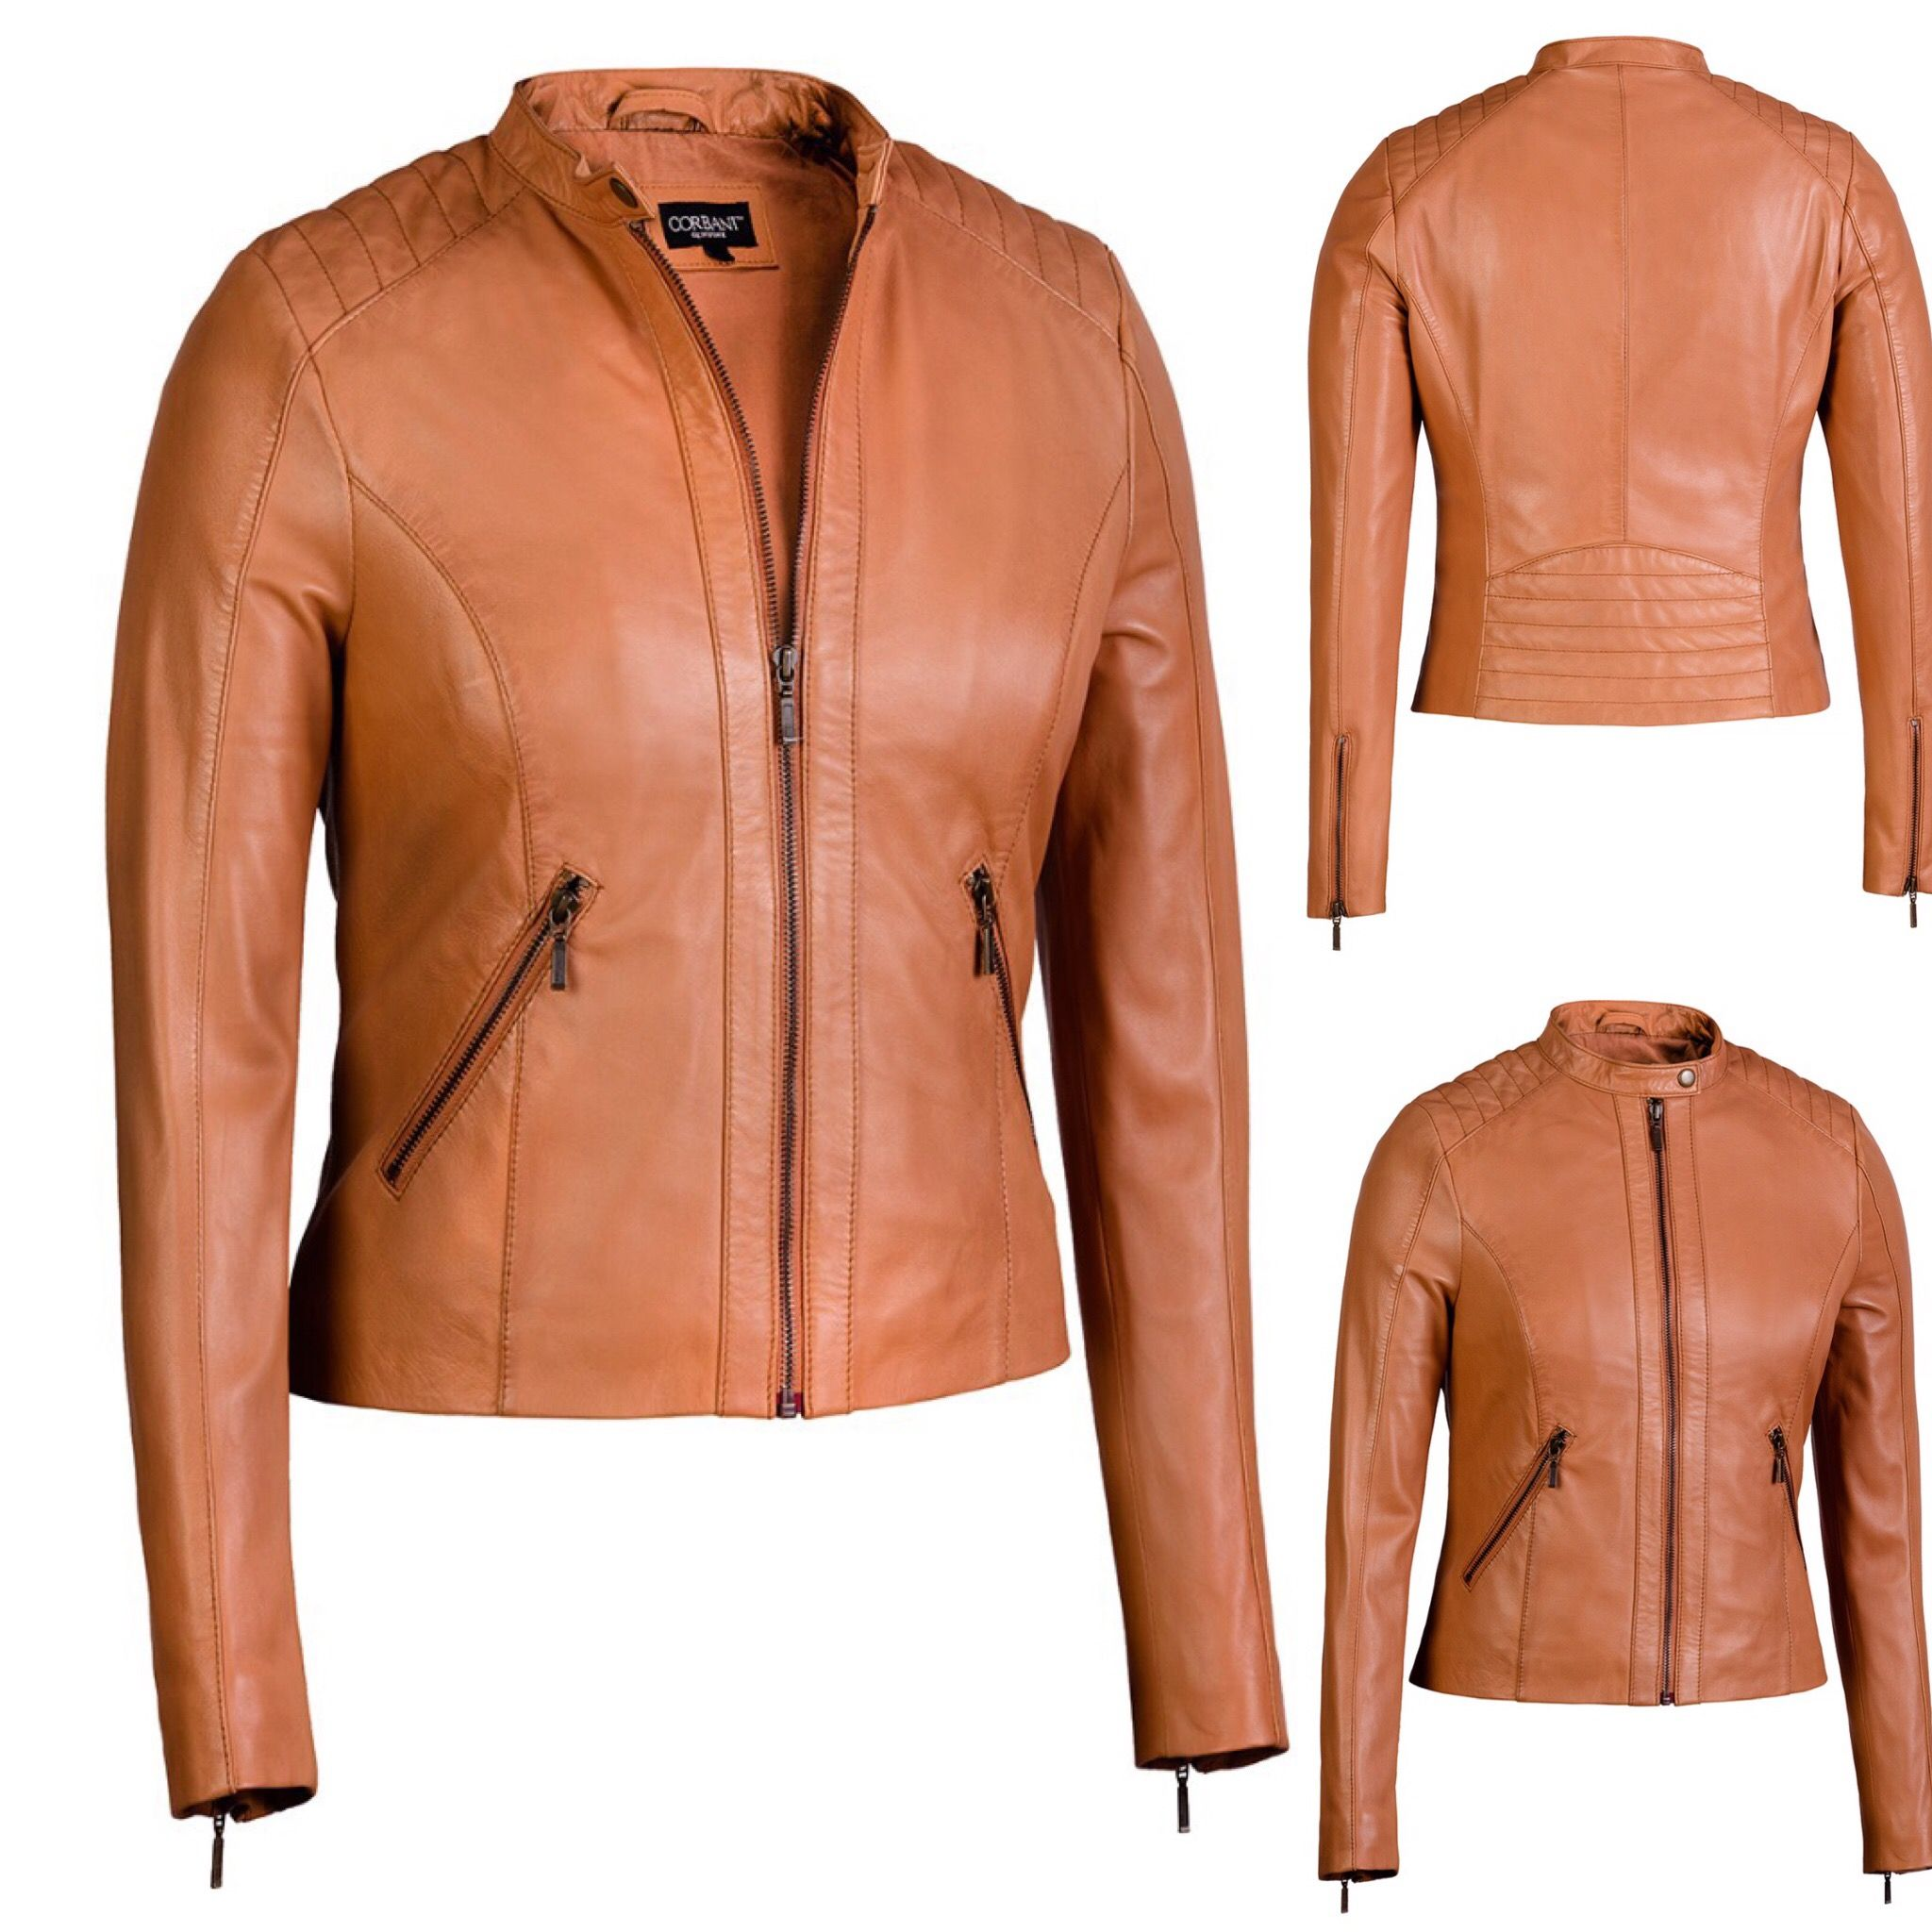 corbani #corbaniaw16 #corbaniwomen #leather #jackets - Amazon: www ...